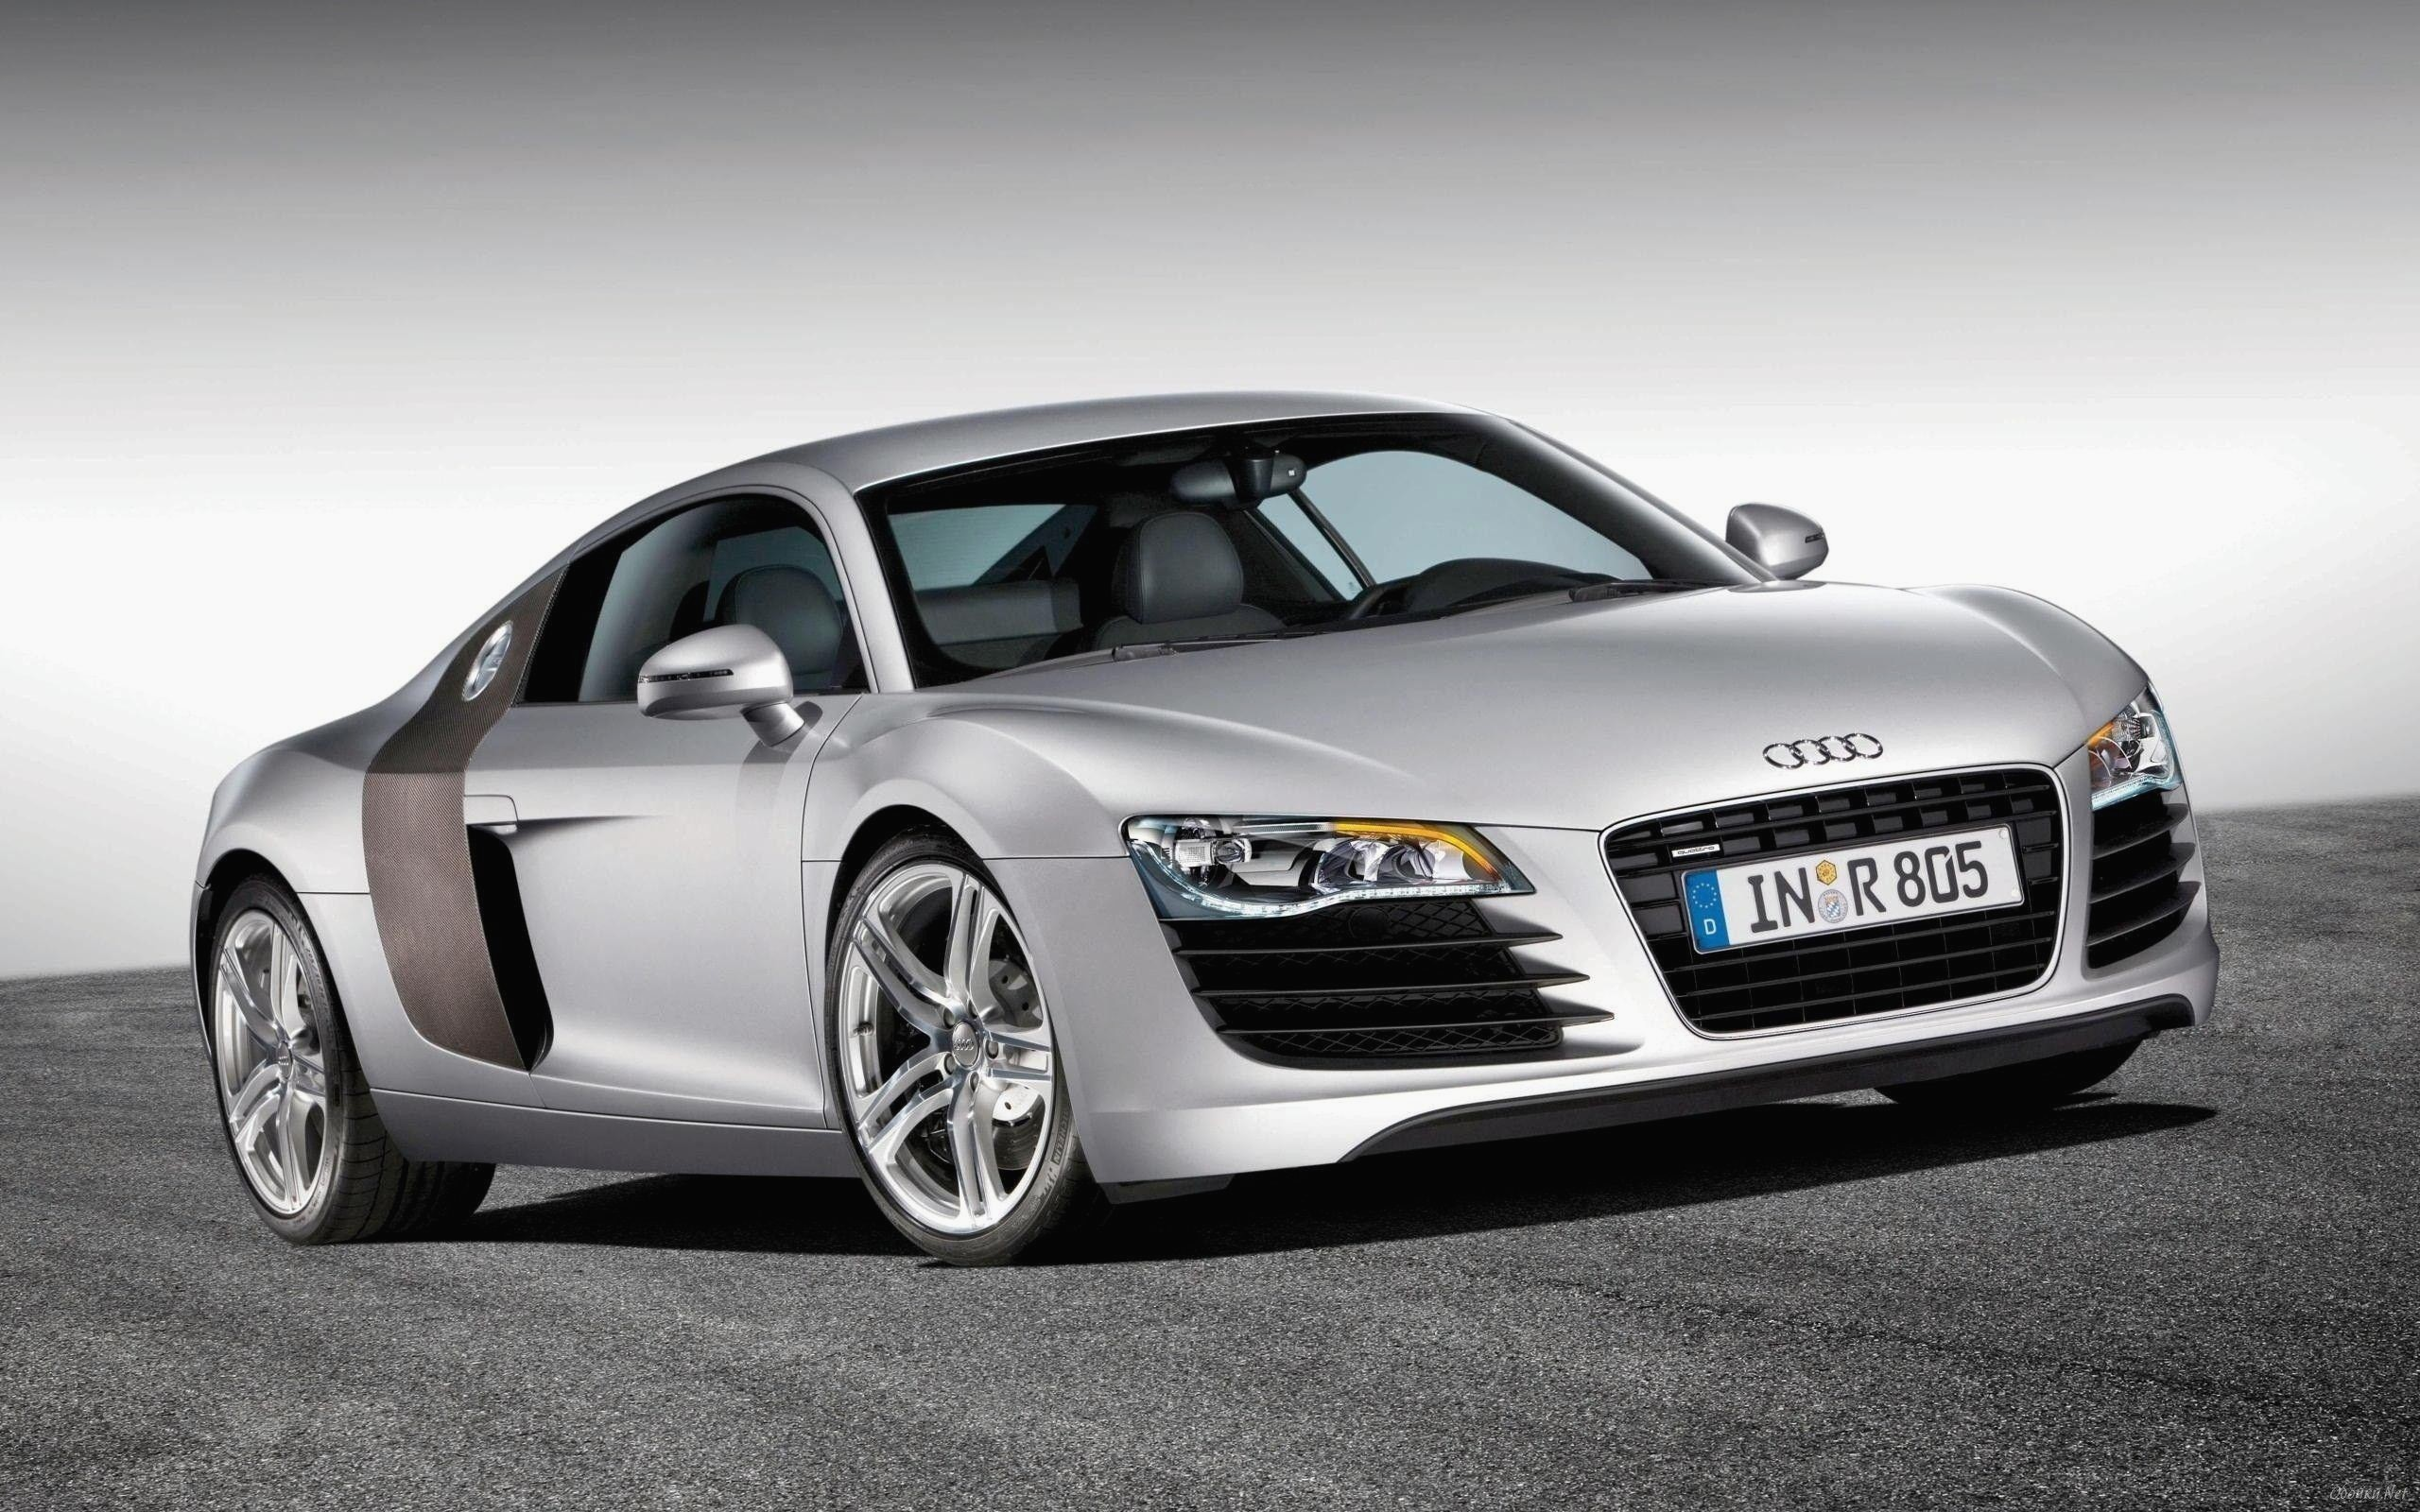 1920x1440 All Audi Cars Elegant Audi Car Wallpaper Wallpapers for Free About 3 274 Of Lovely All. Download